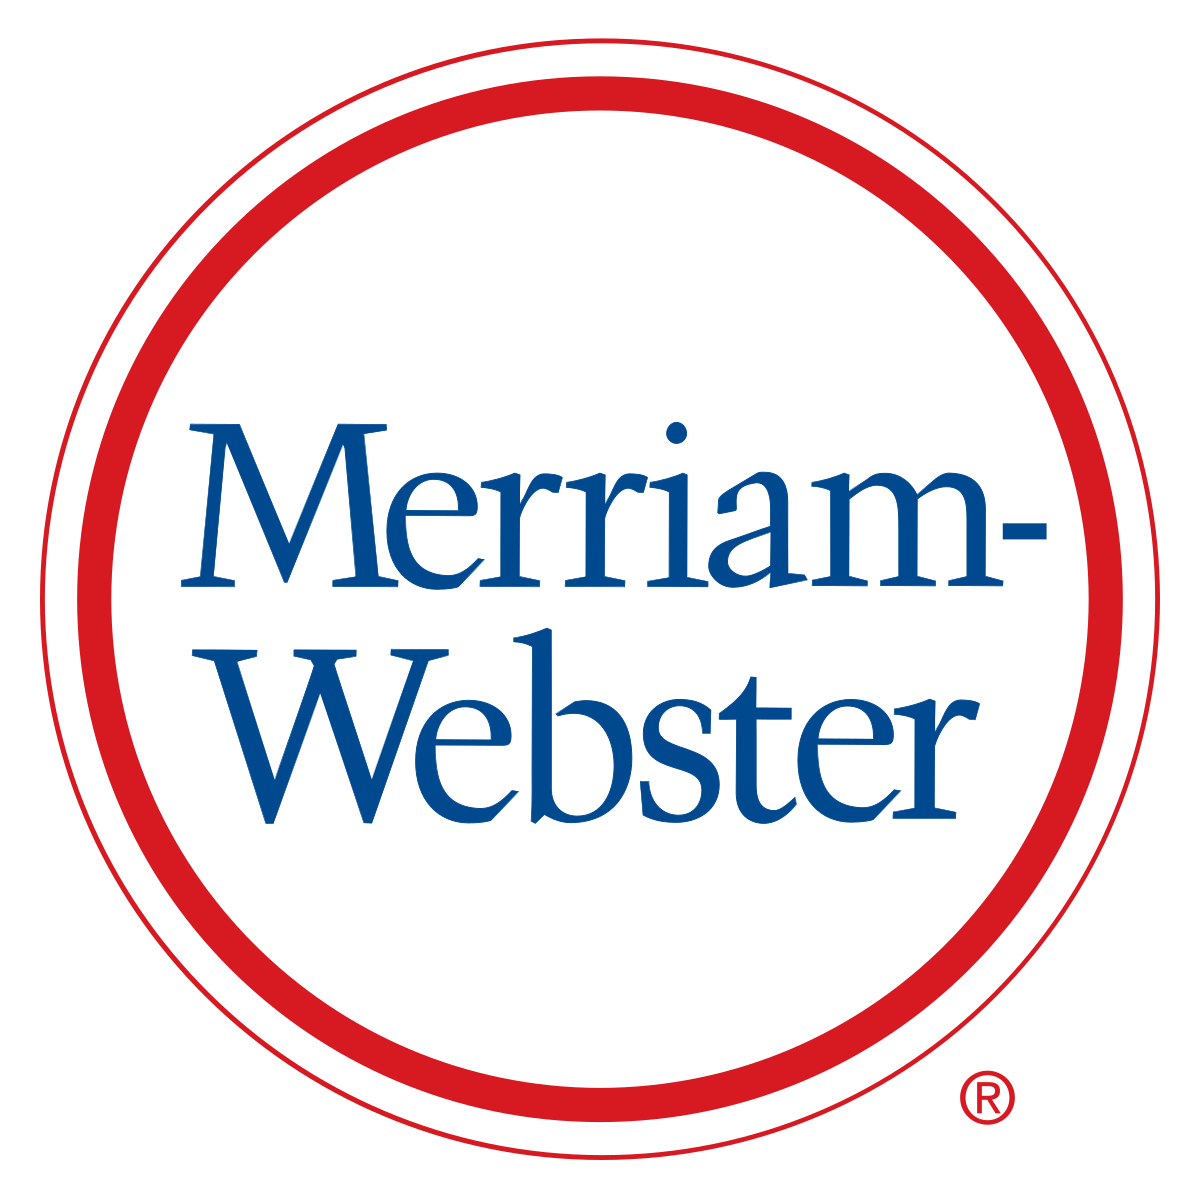 Merriam Webster Dictionary Logo Astrology.png